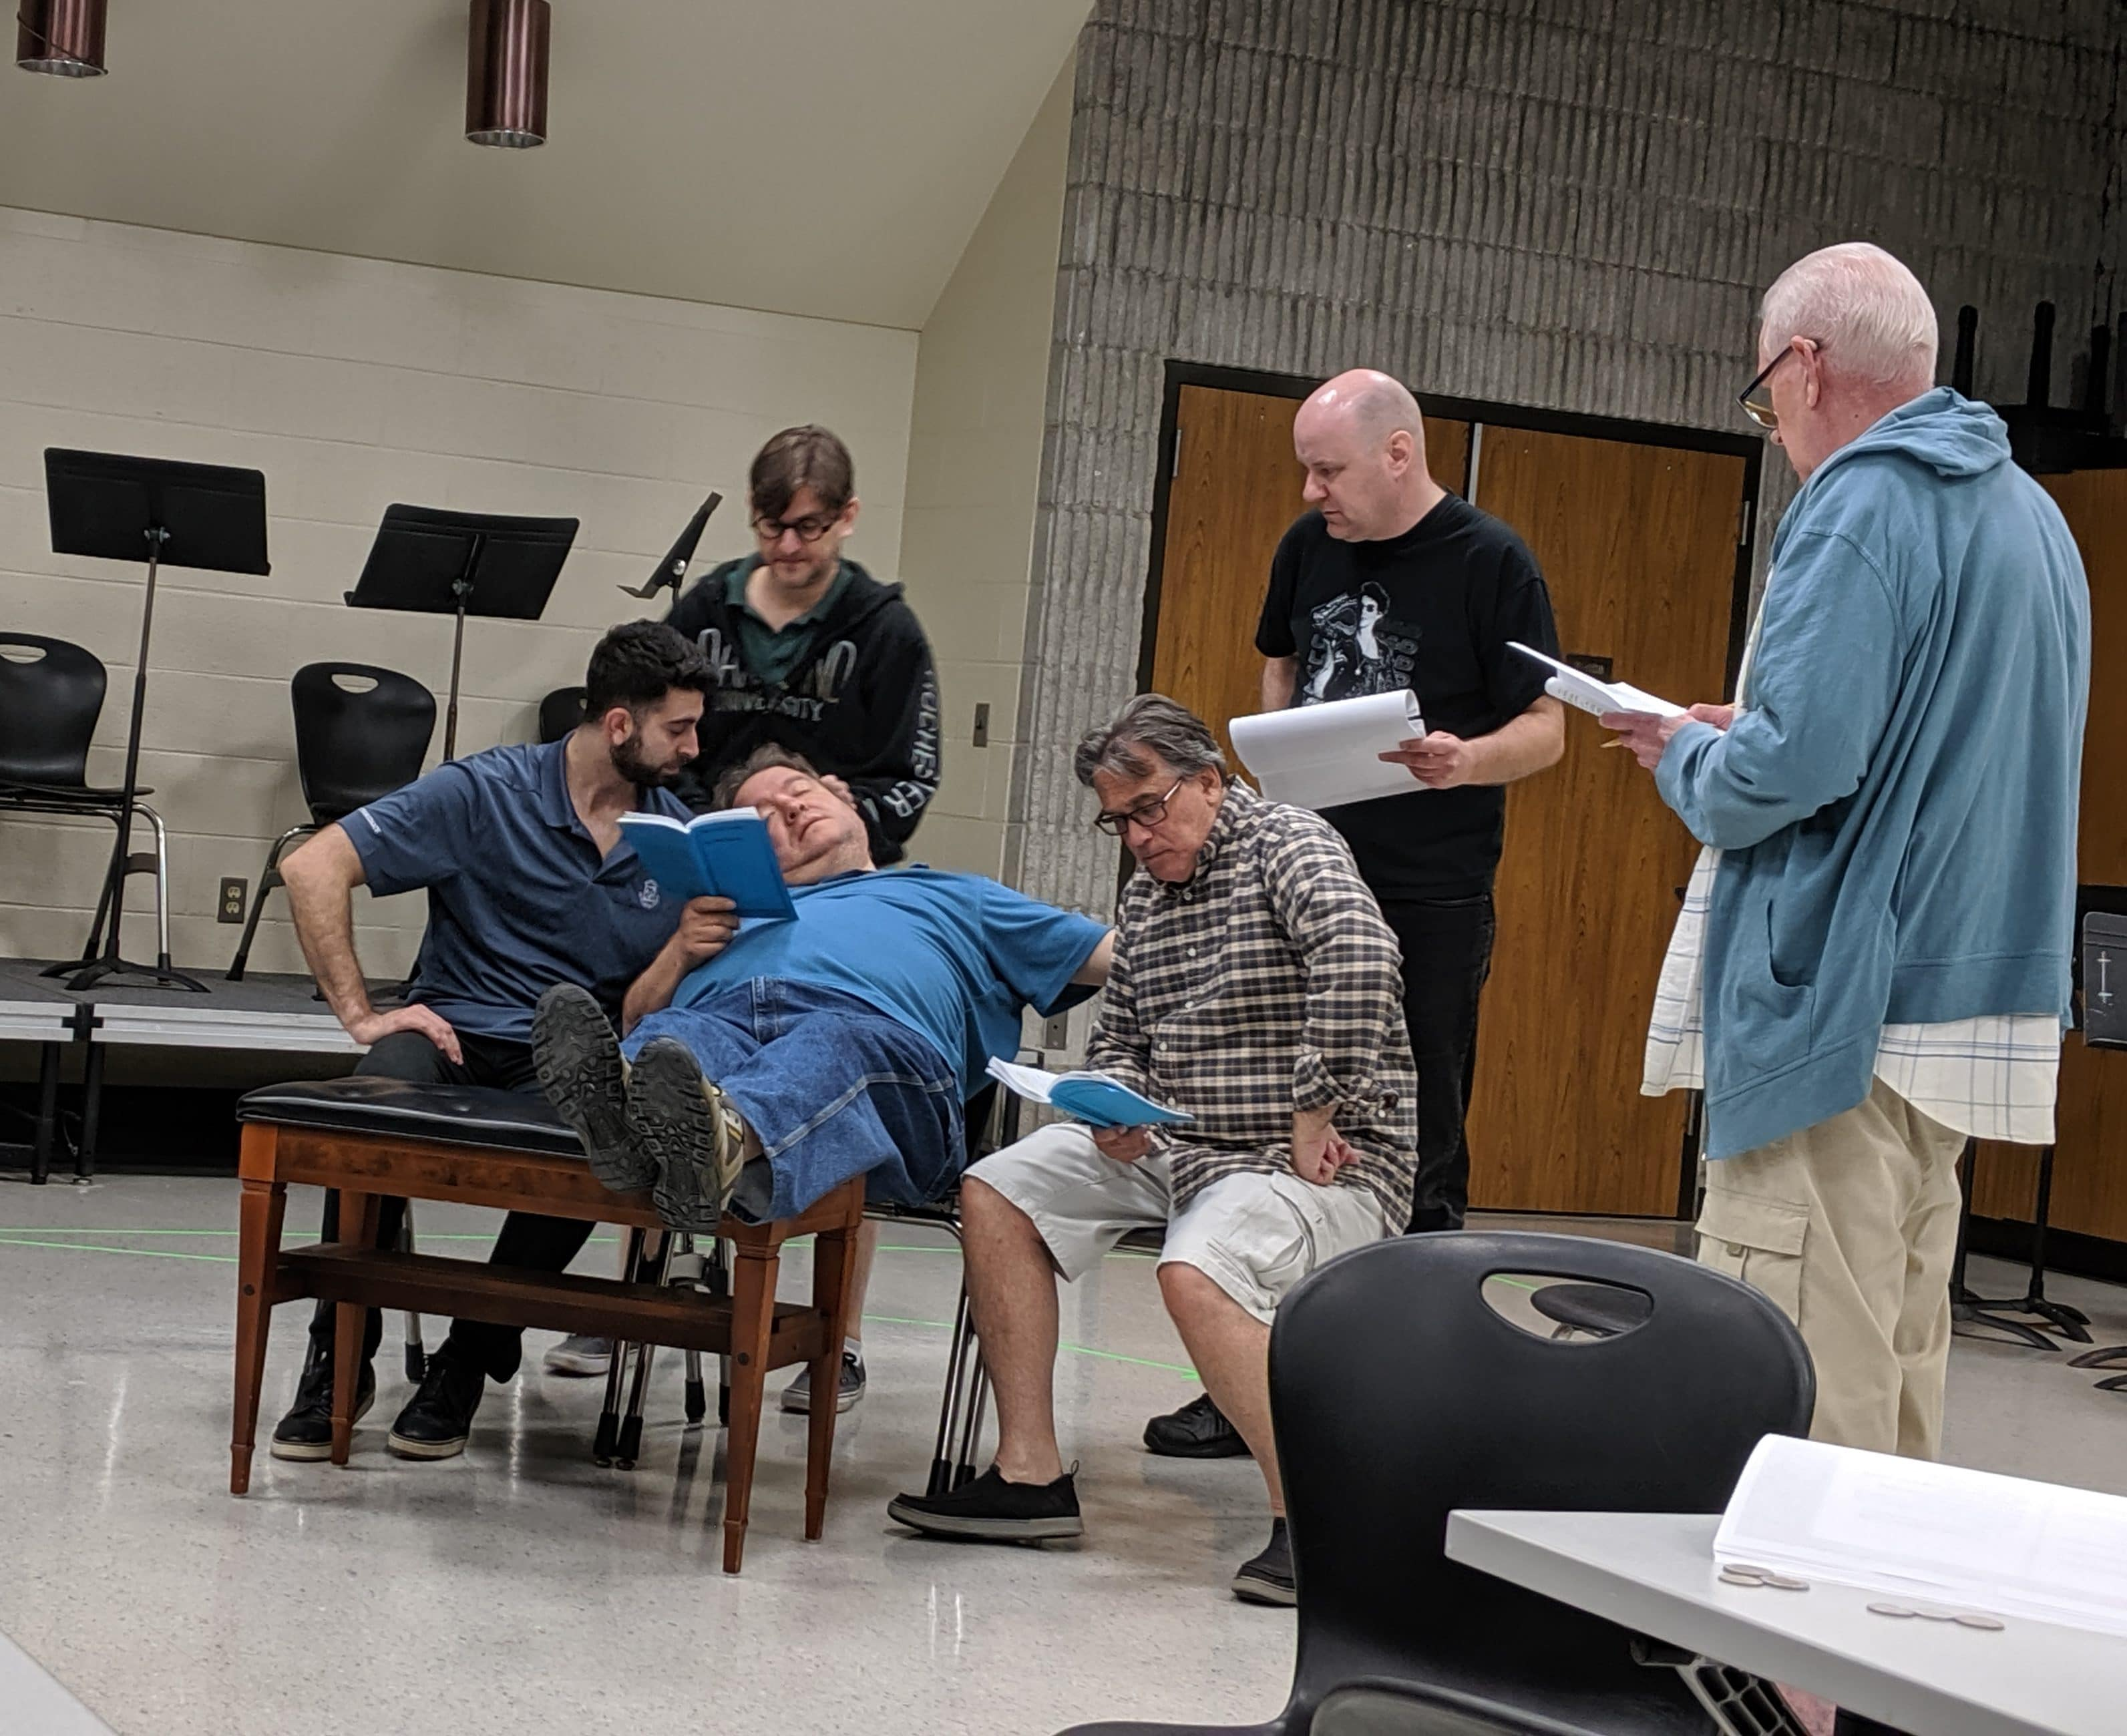 Cast members of JET's The Odd Couple in rehearsal at Henry Ford College in Dearborn